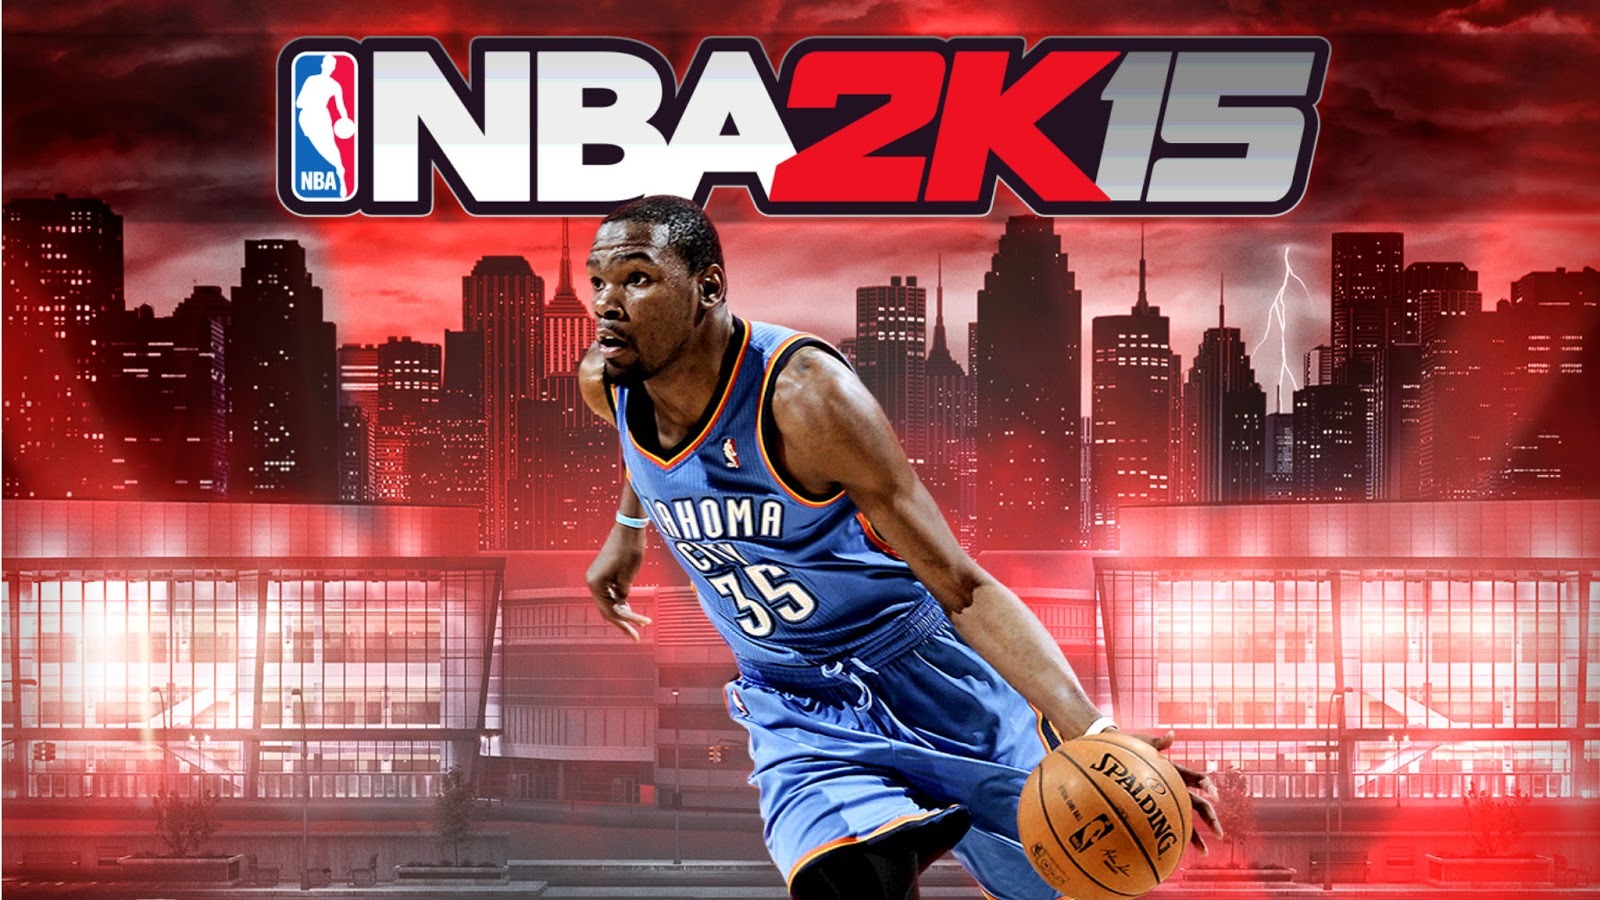 nba 2k17 highly compressed android game download